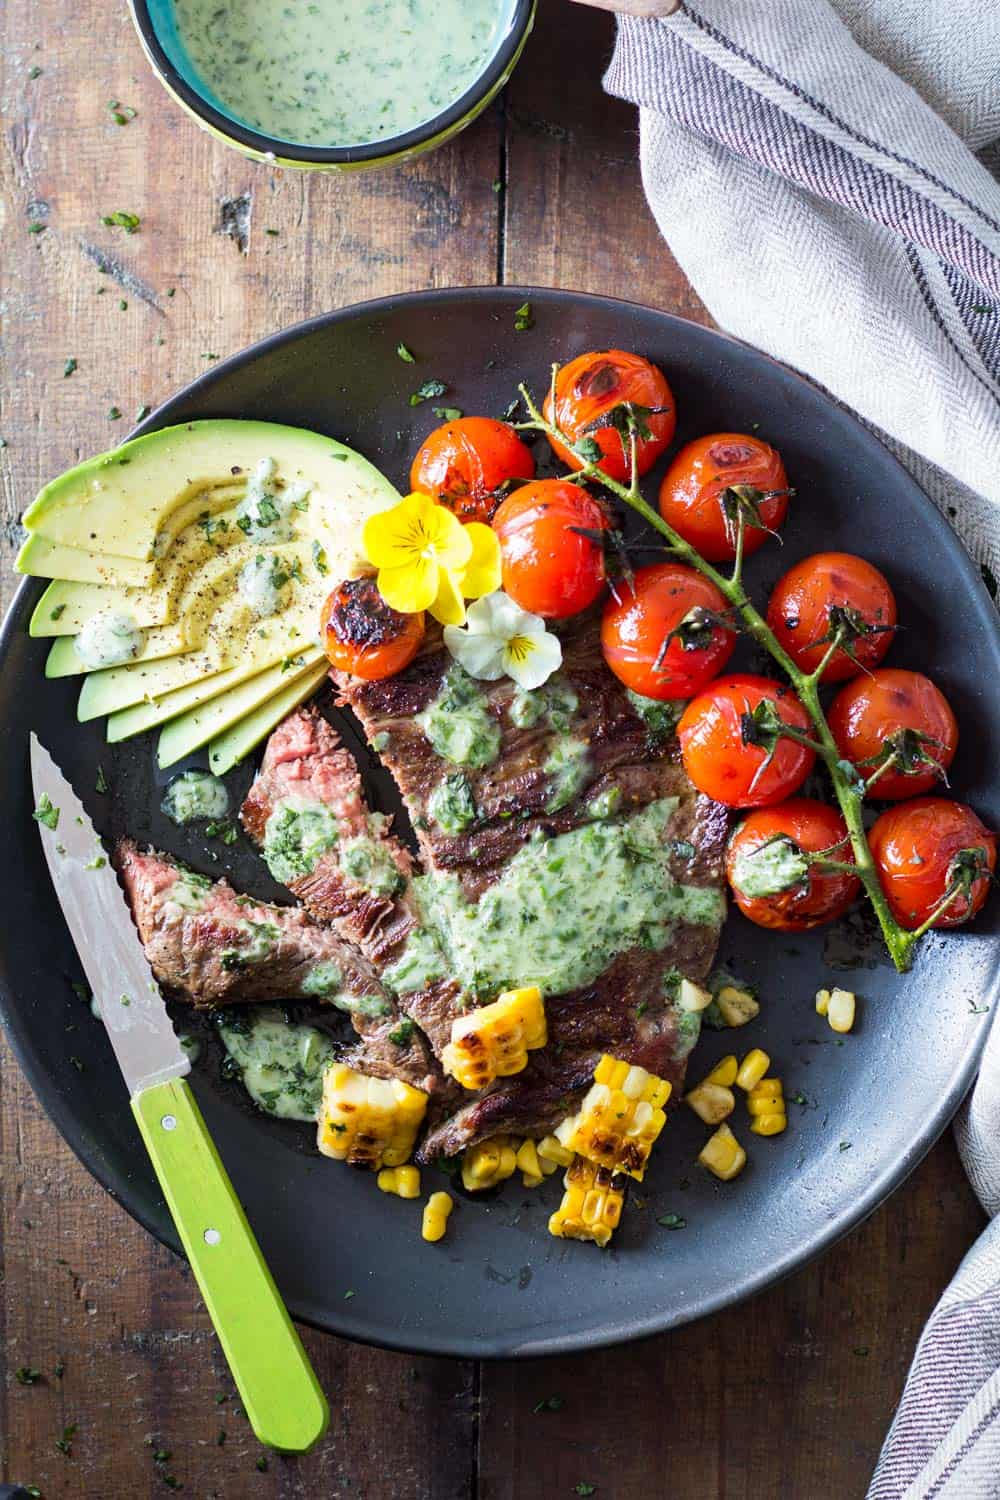 Let the grilling season begin! In need of a healthy, quick and easy recipe? I've got you covered: Skirt Steak with Basil Cream and Grilled Tomatoes!